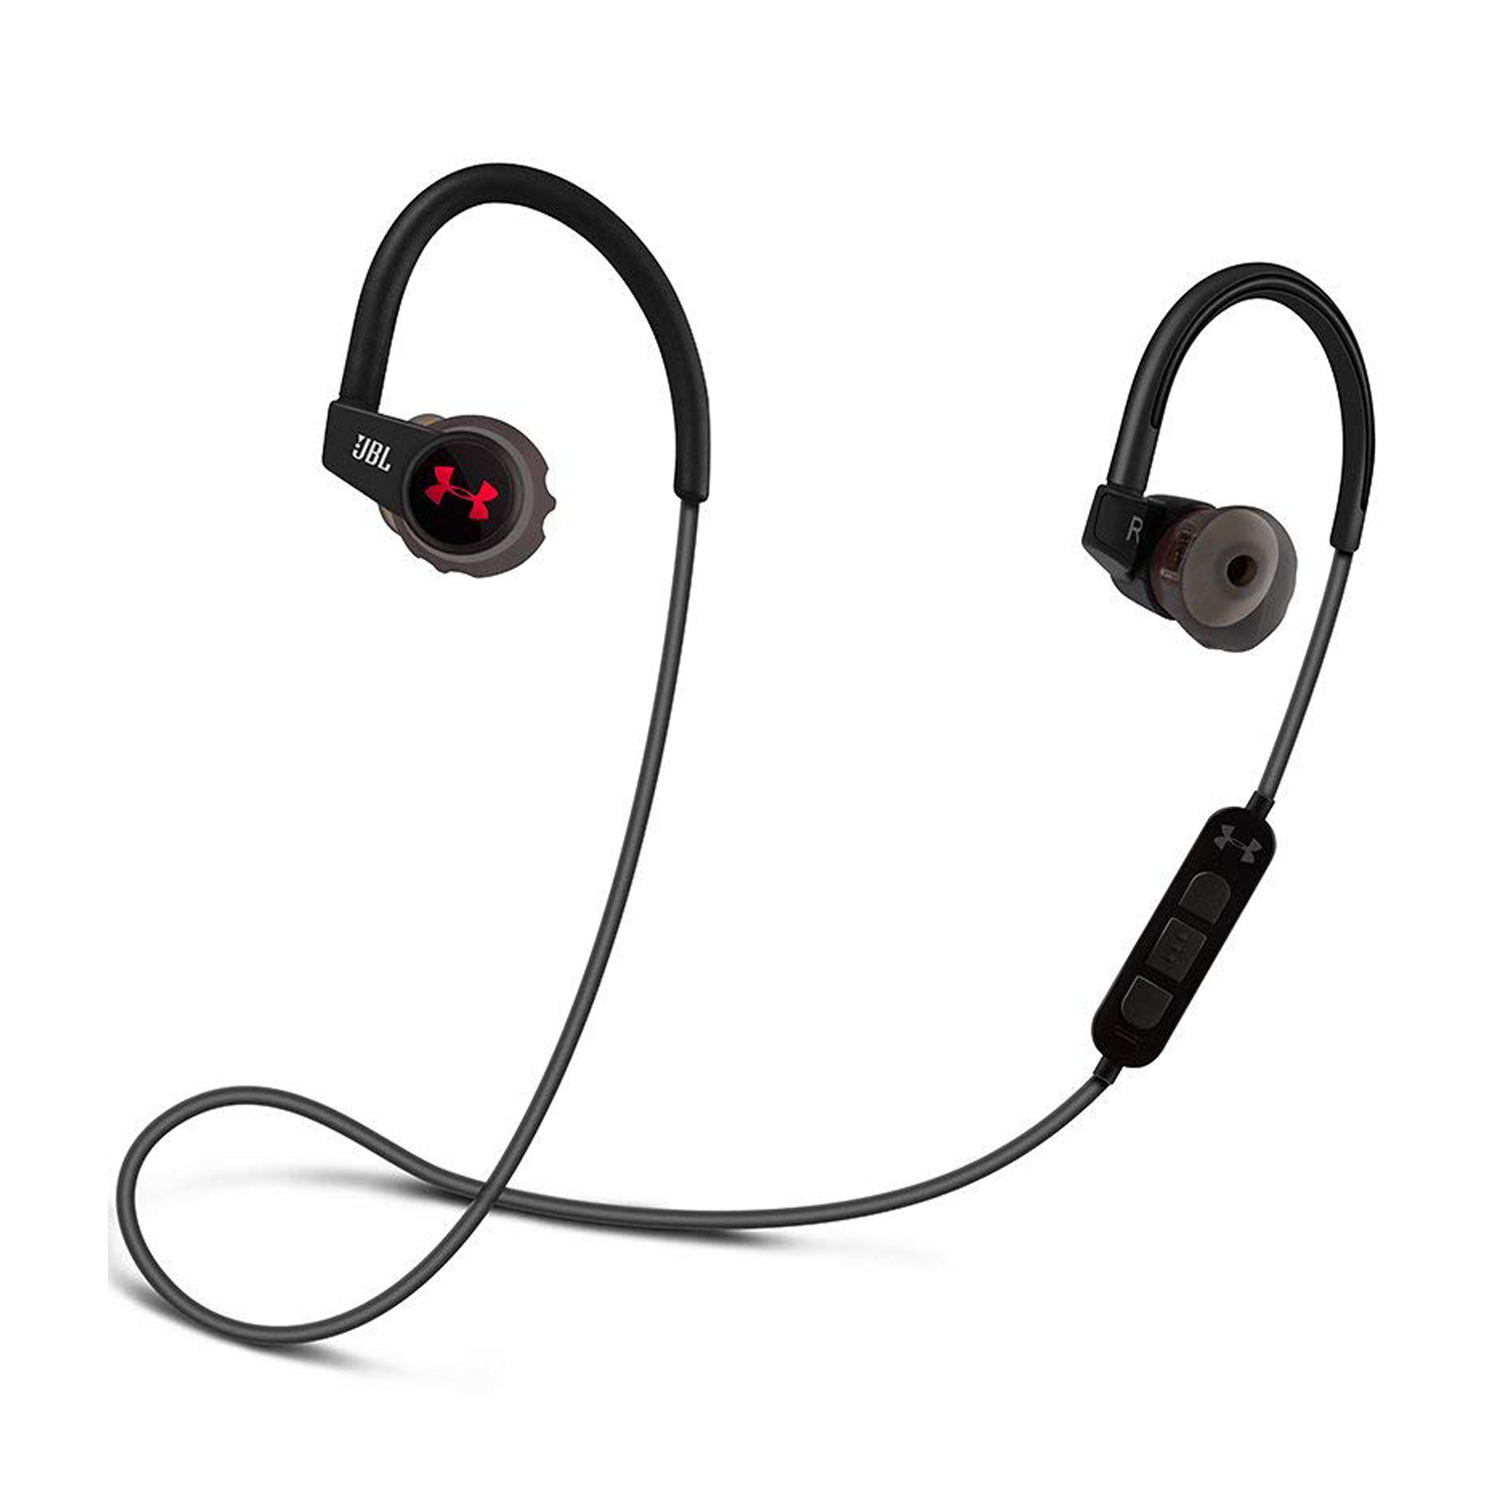 25f15bb05a8 JBL Under Armour Sport Wireless In-Ear Headphones with Heart Rate Monitor  in Black | Tekzone